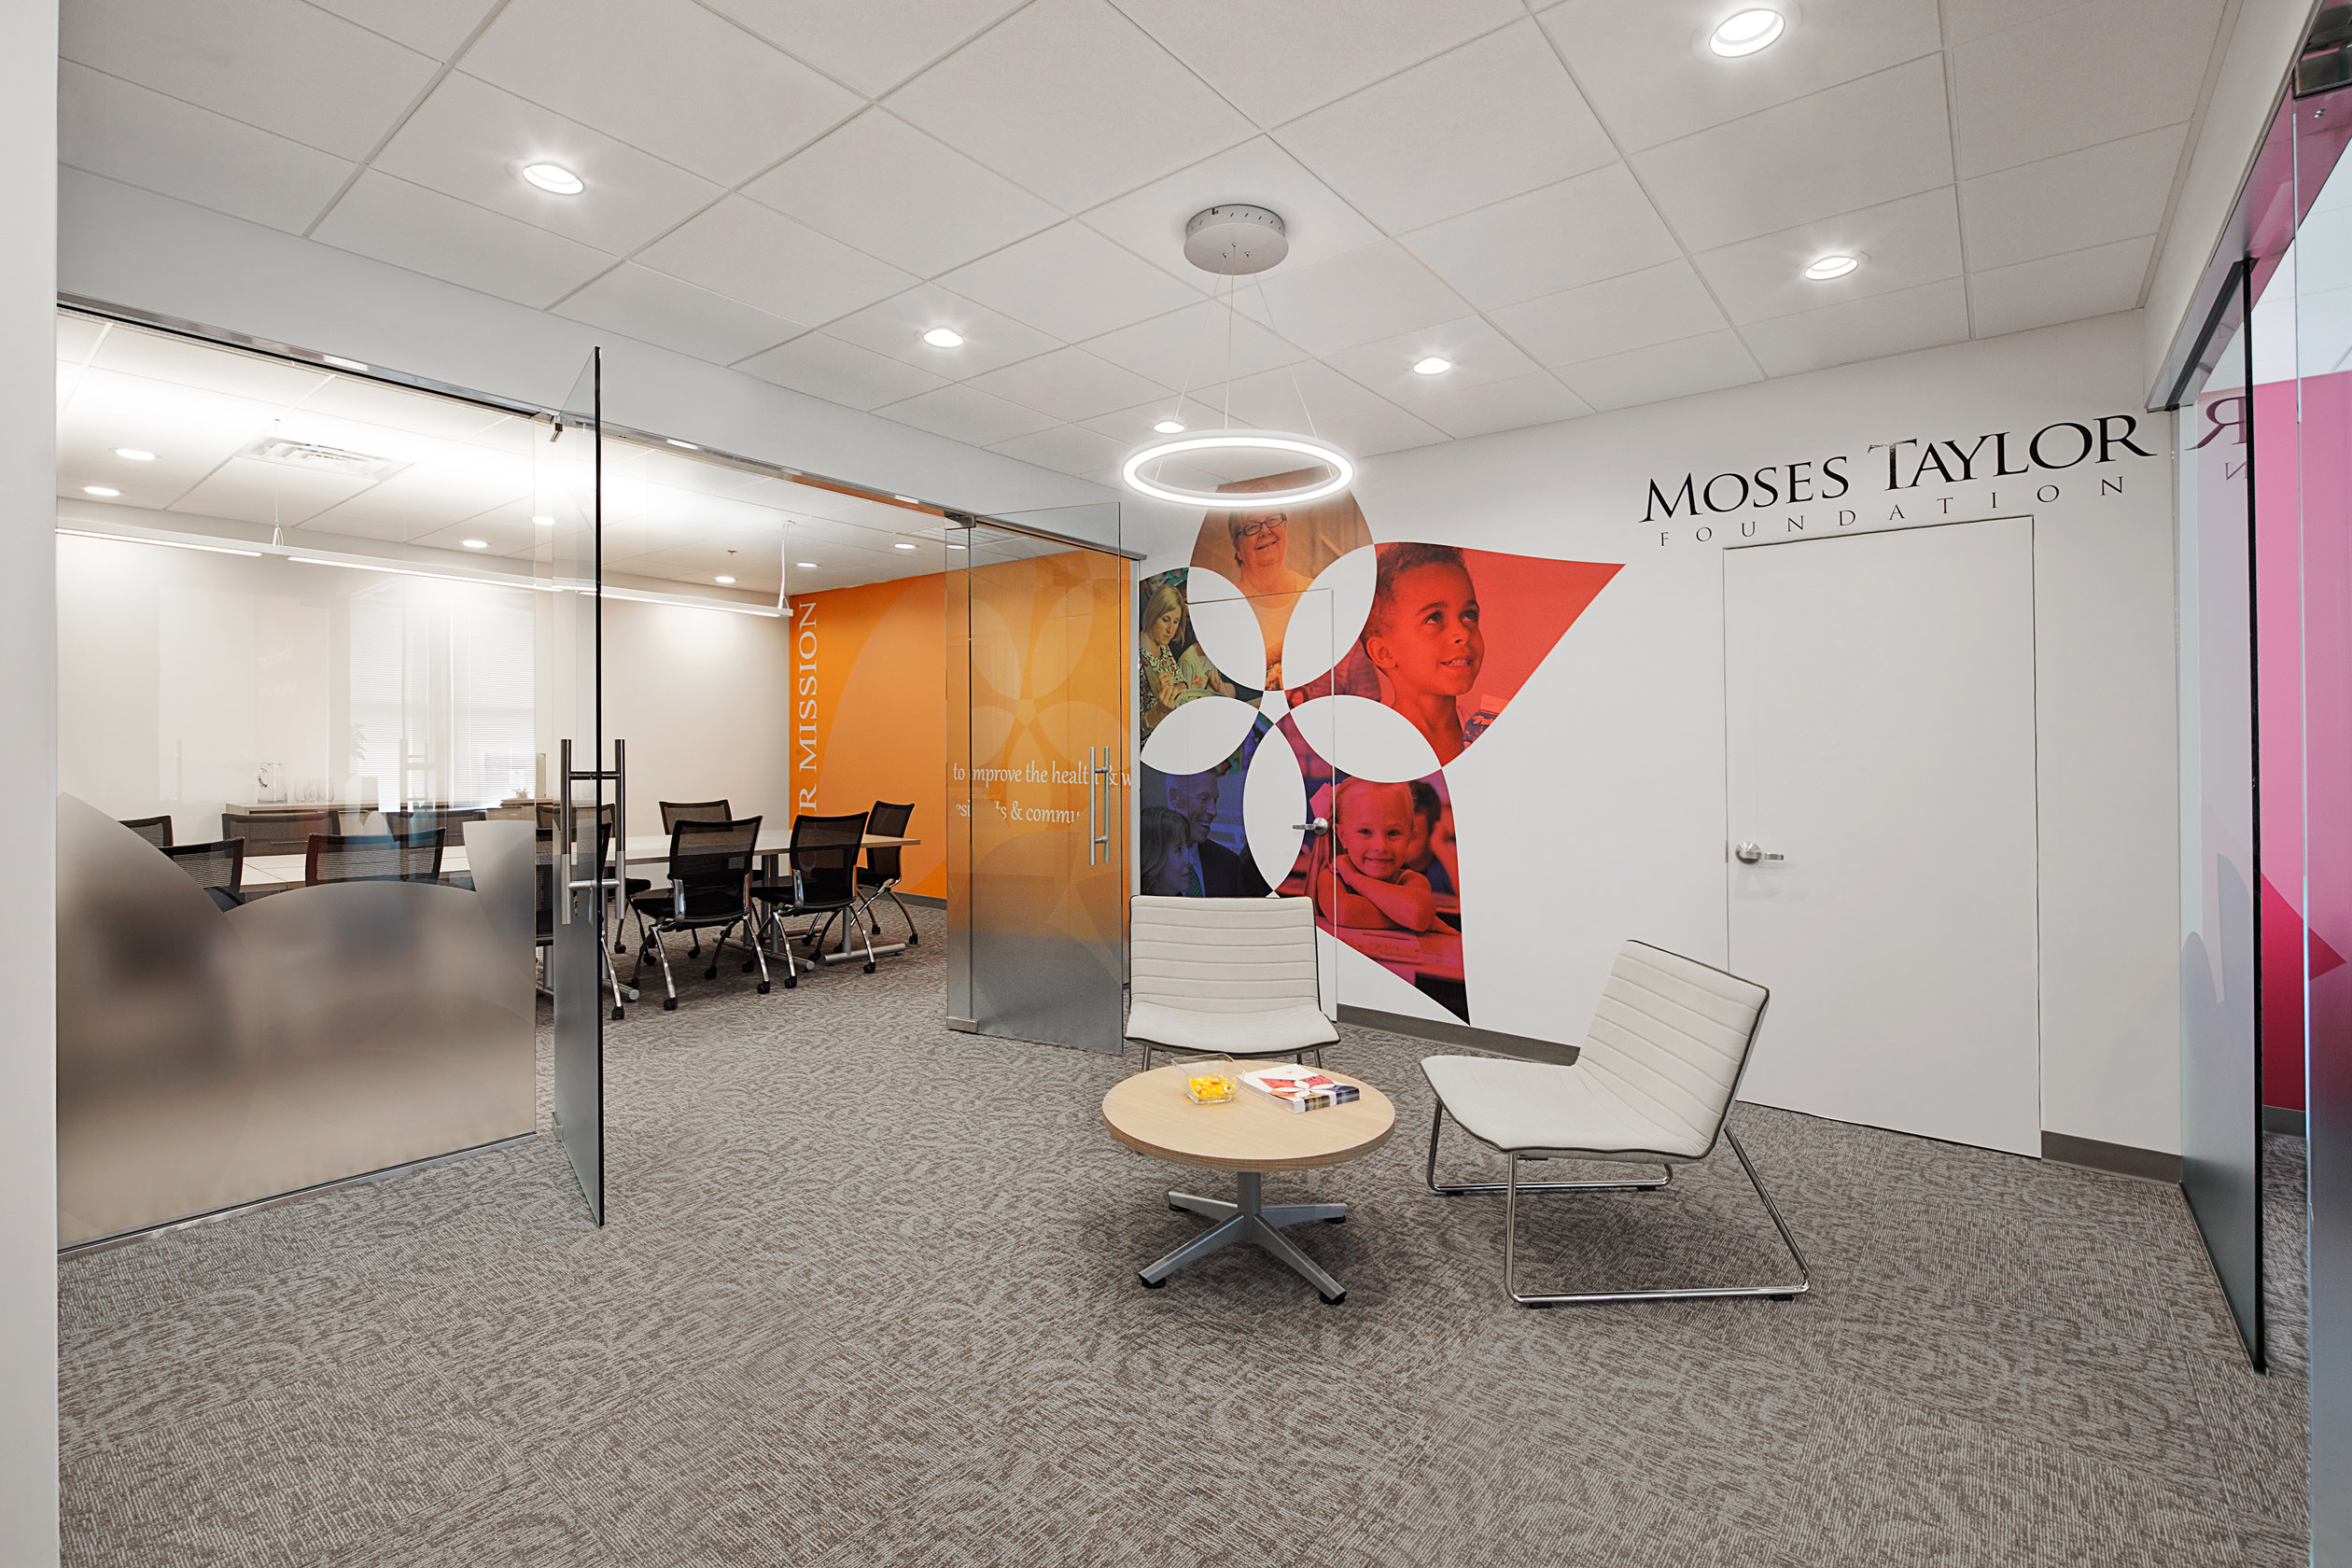 The Moses Taylor Foundation Branded Environment displays its Mission, Vision and Values.